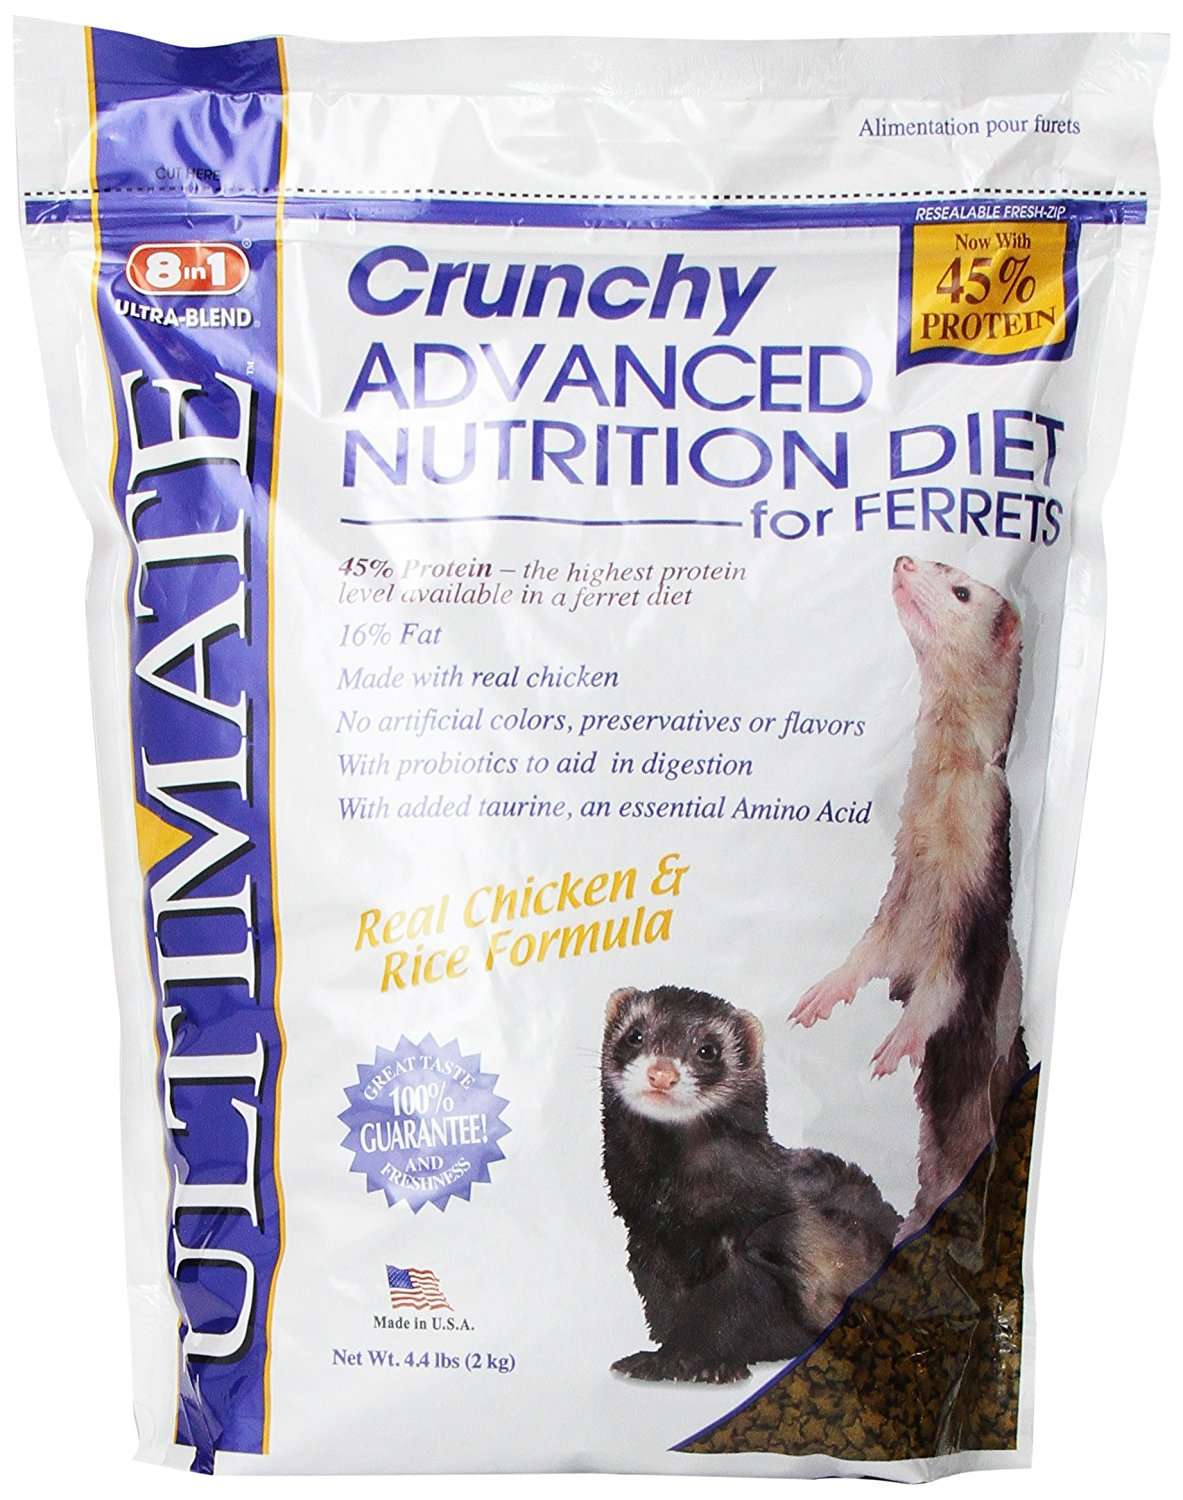 8 in 1 Ferret Food